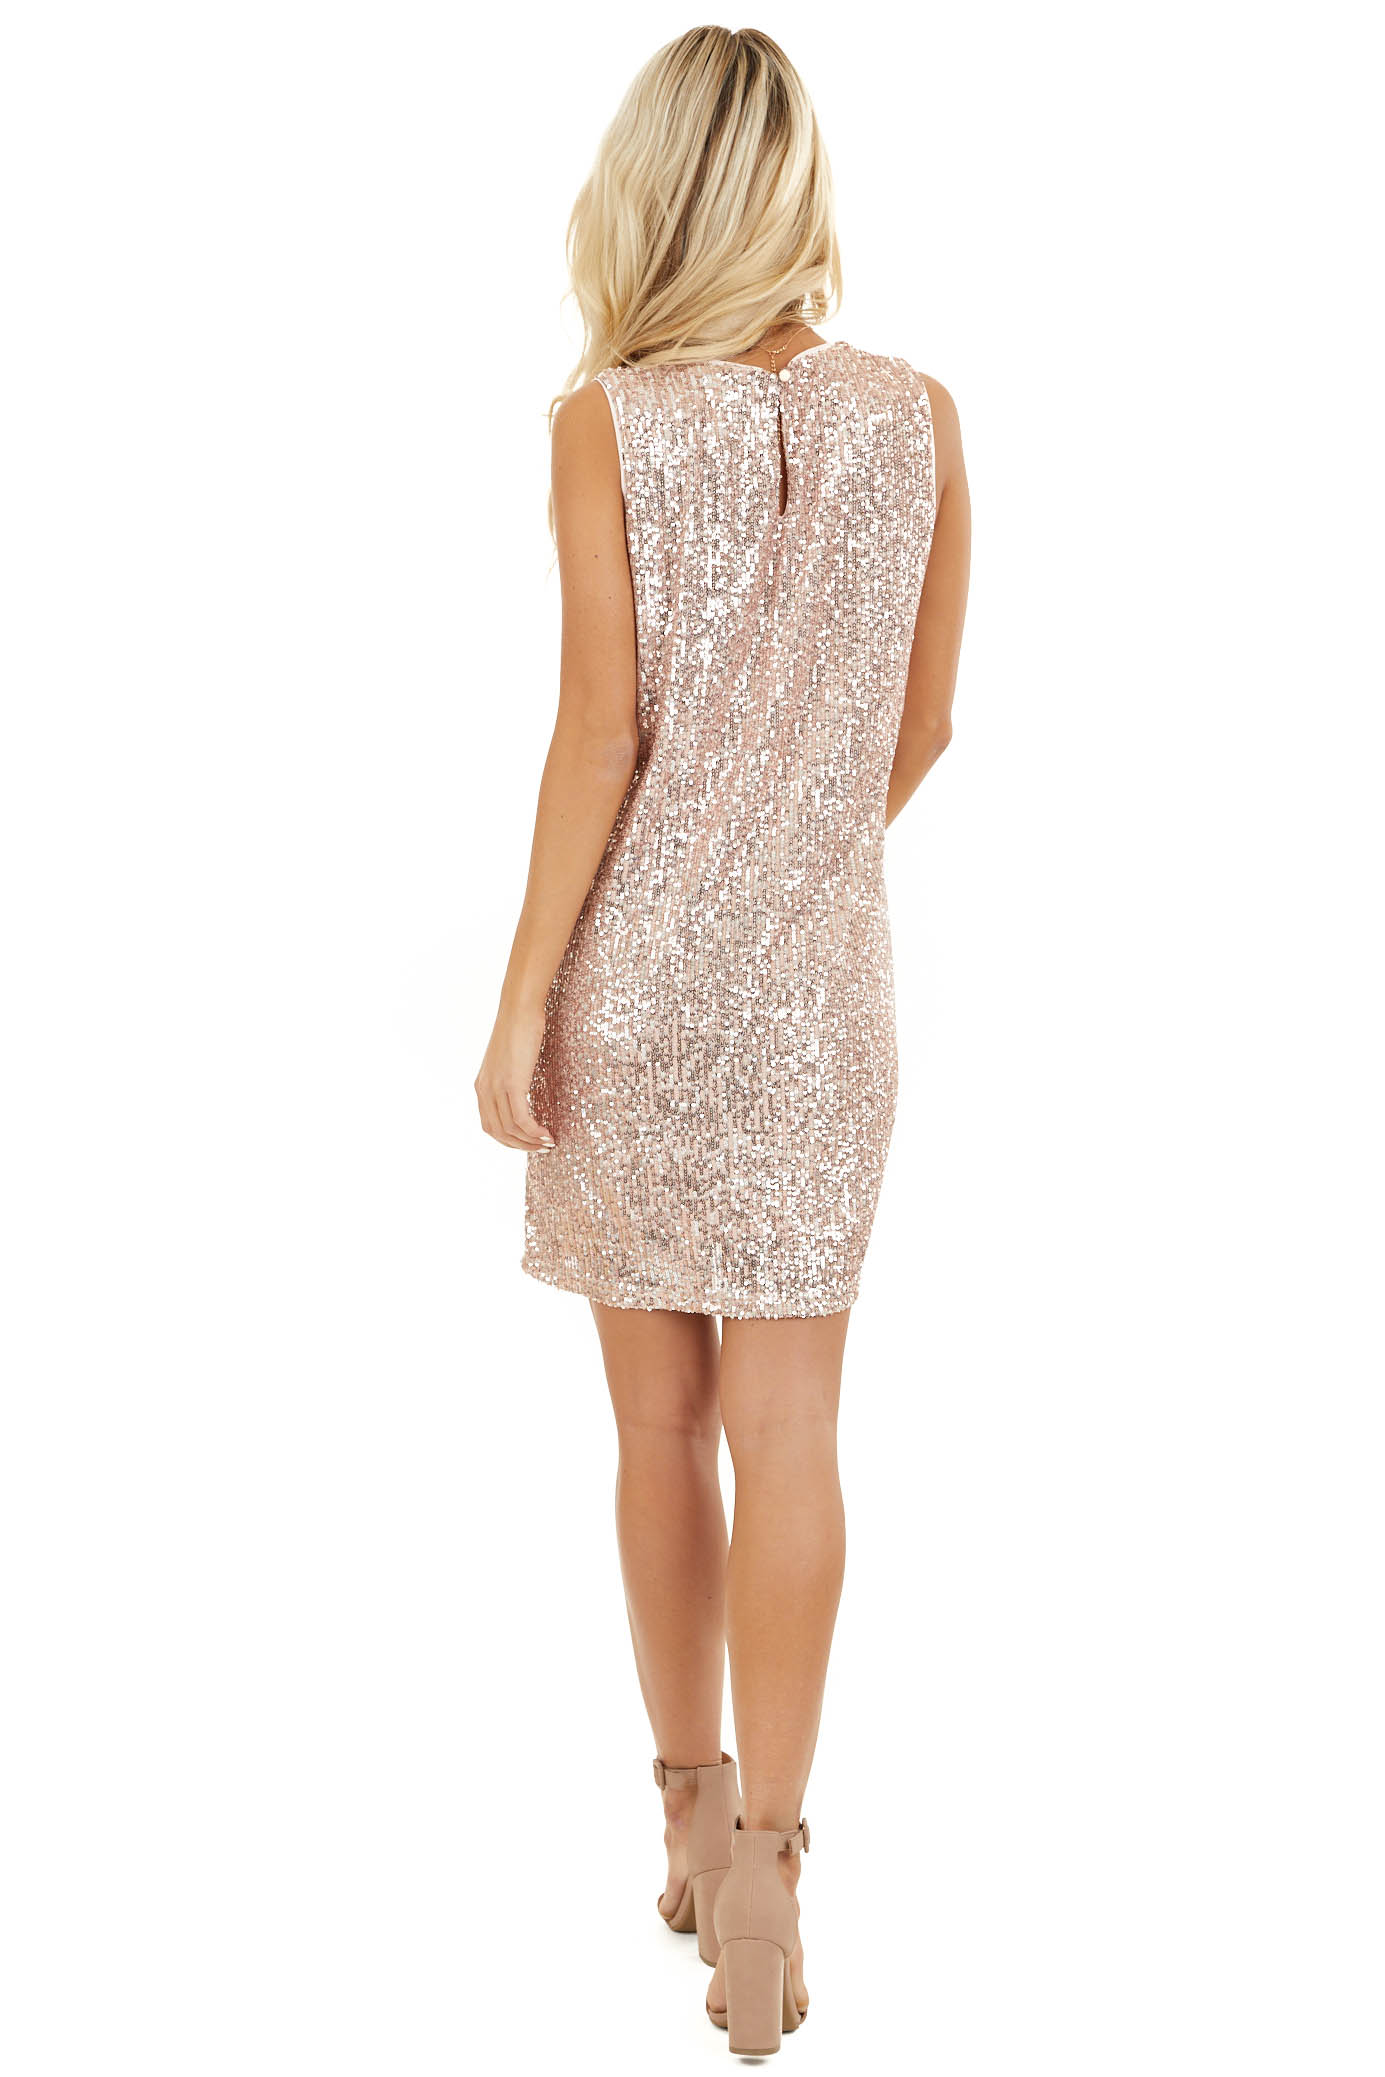 Blush Sequin Sleeveless Mini Dress with Back Keyhole Closure back full body